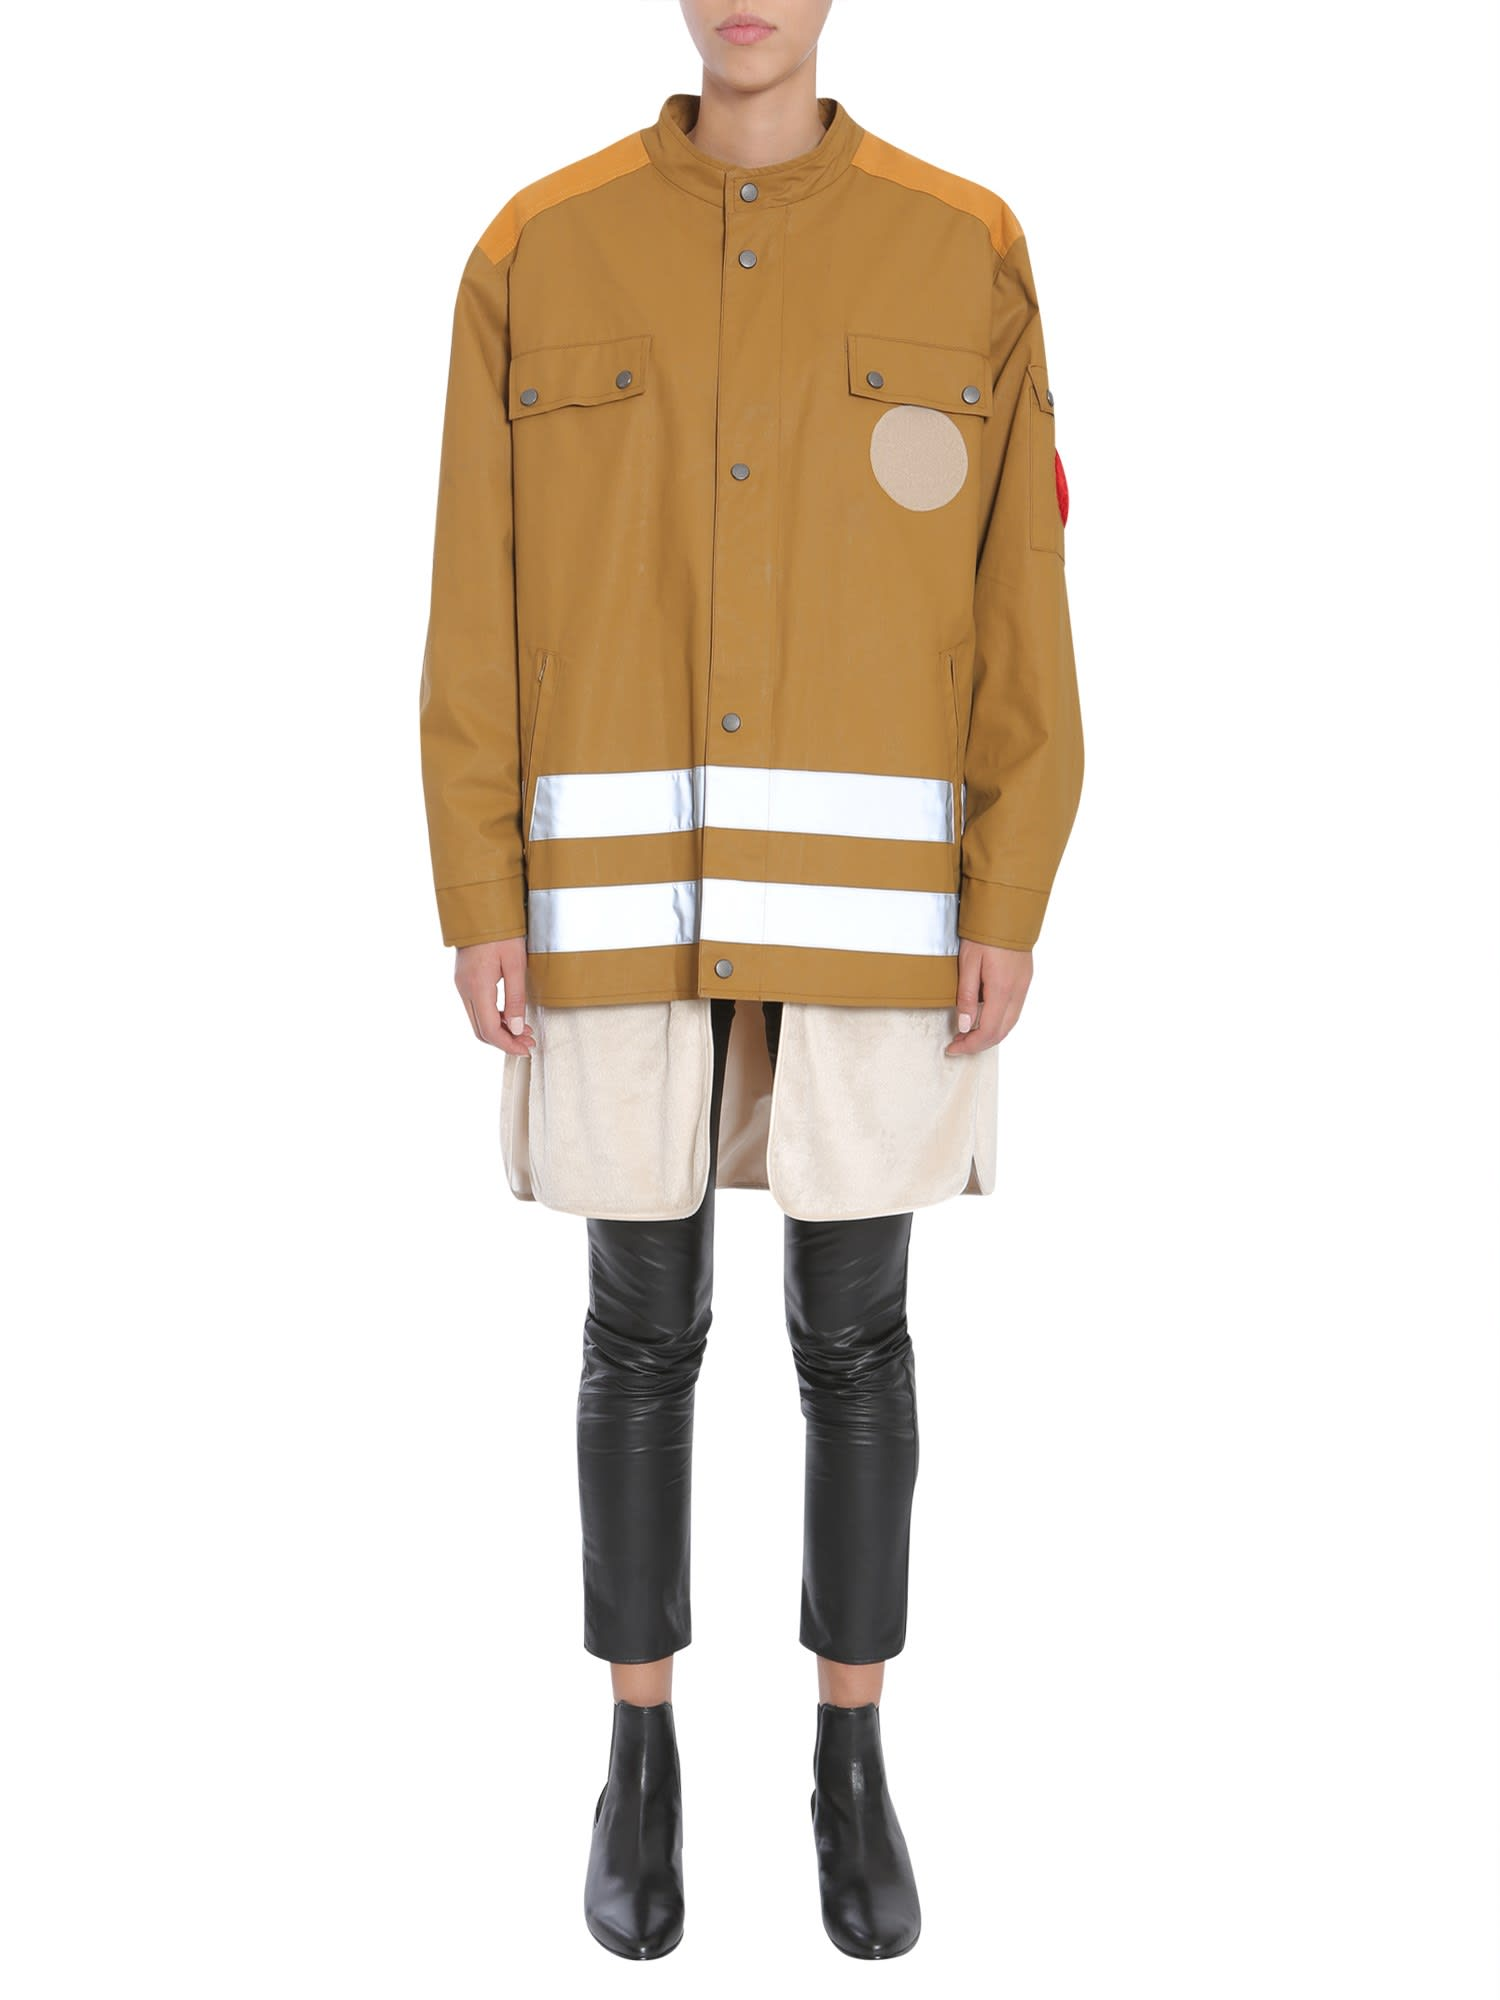 Maison Margiela Parka With Reflective Bands